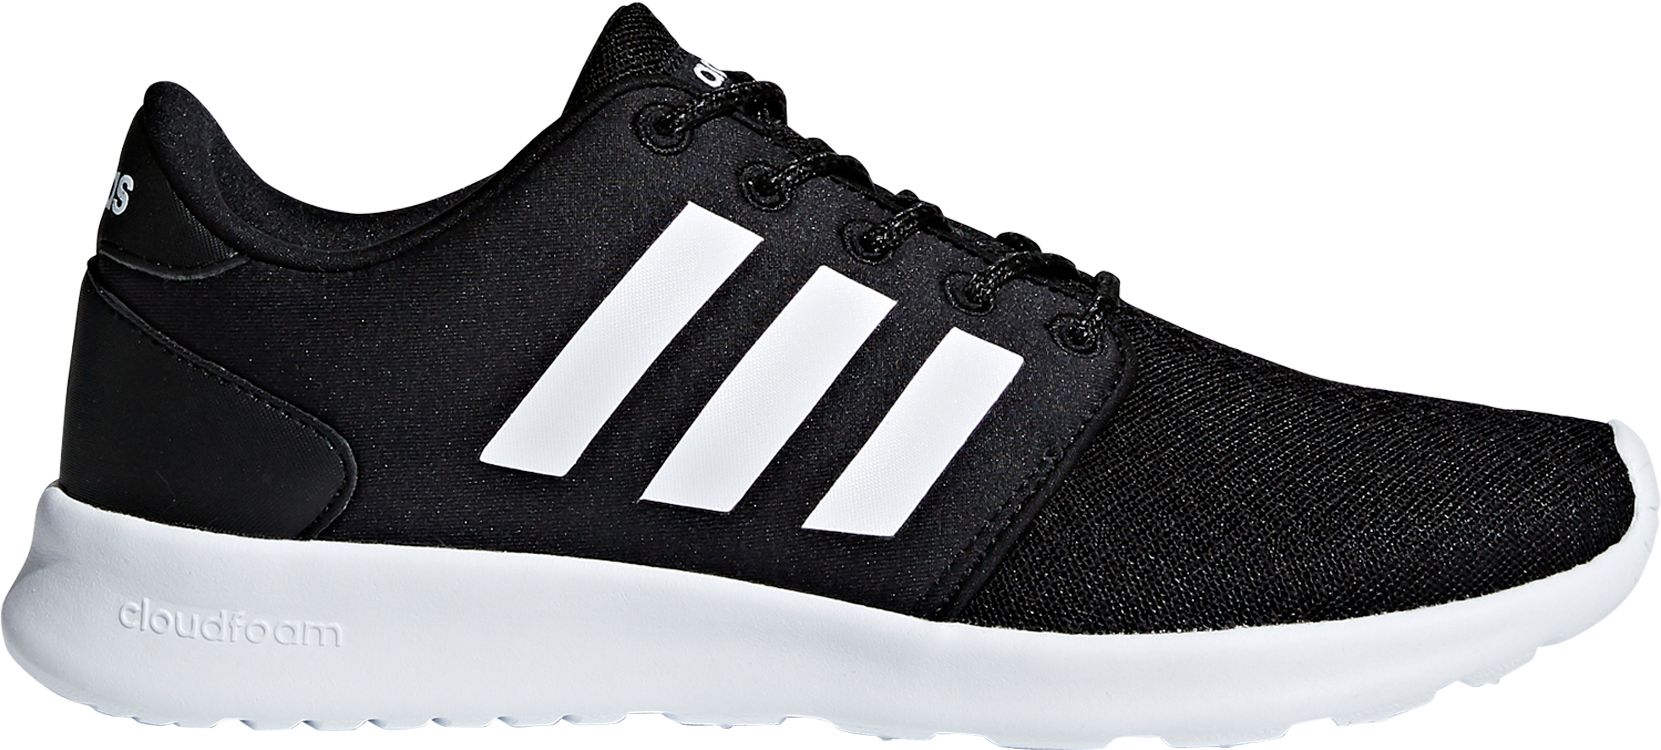 women's adidas cloudfoam shoes